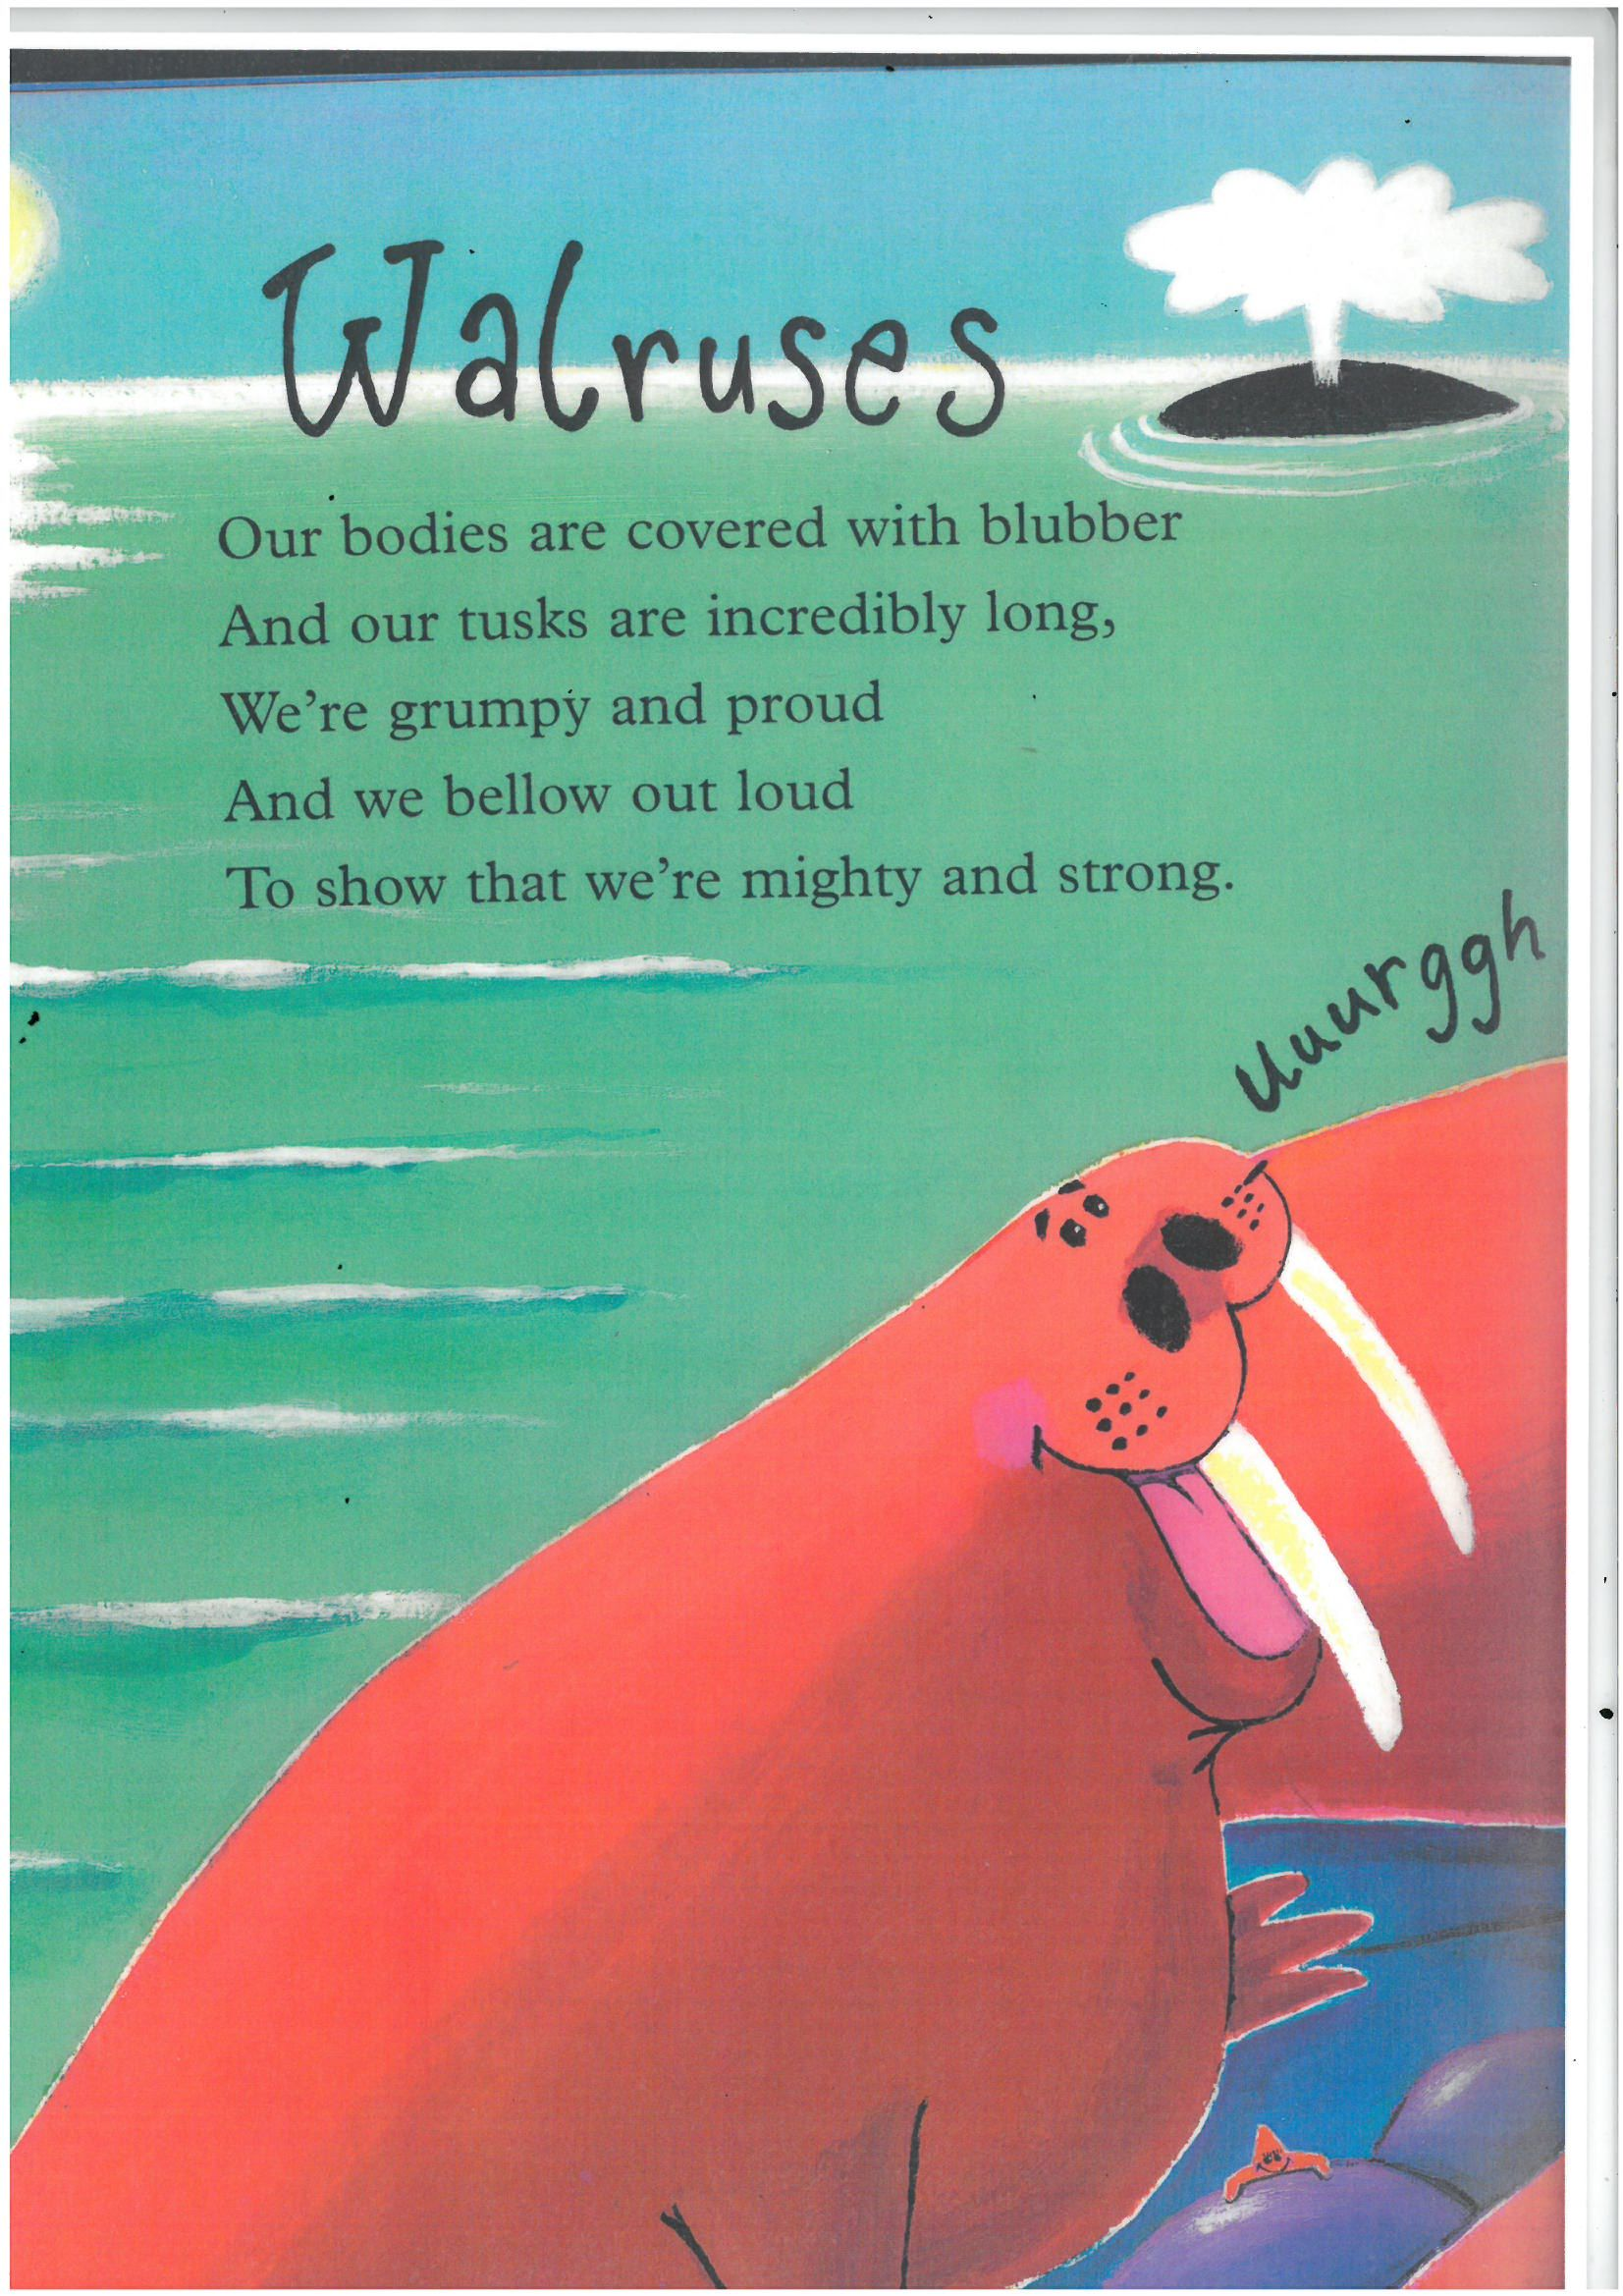 Walrus Poems For Kids